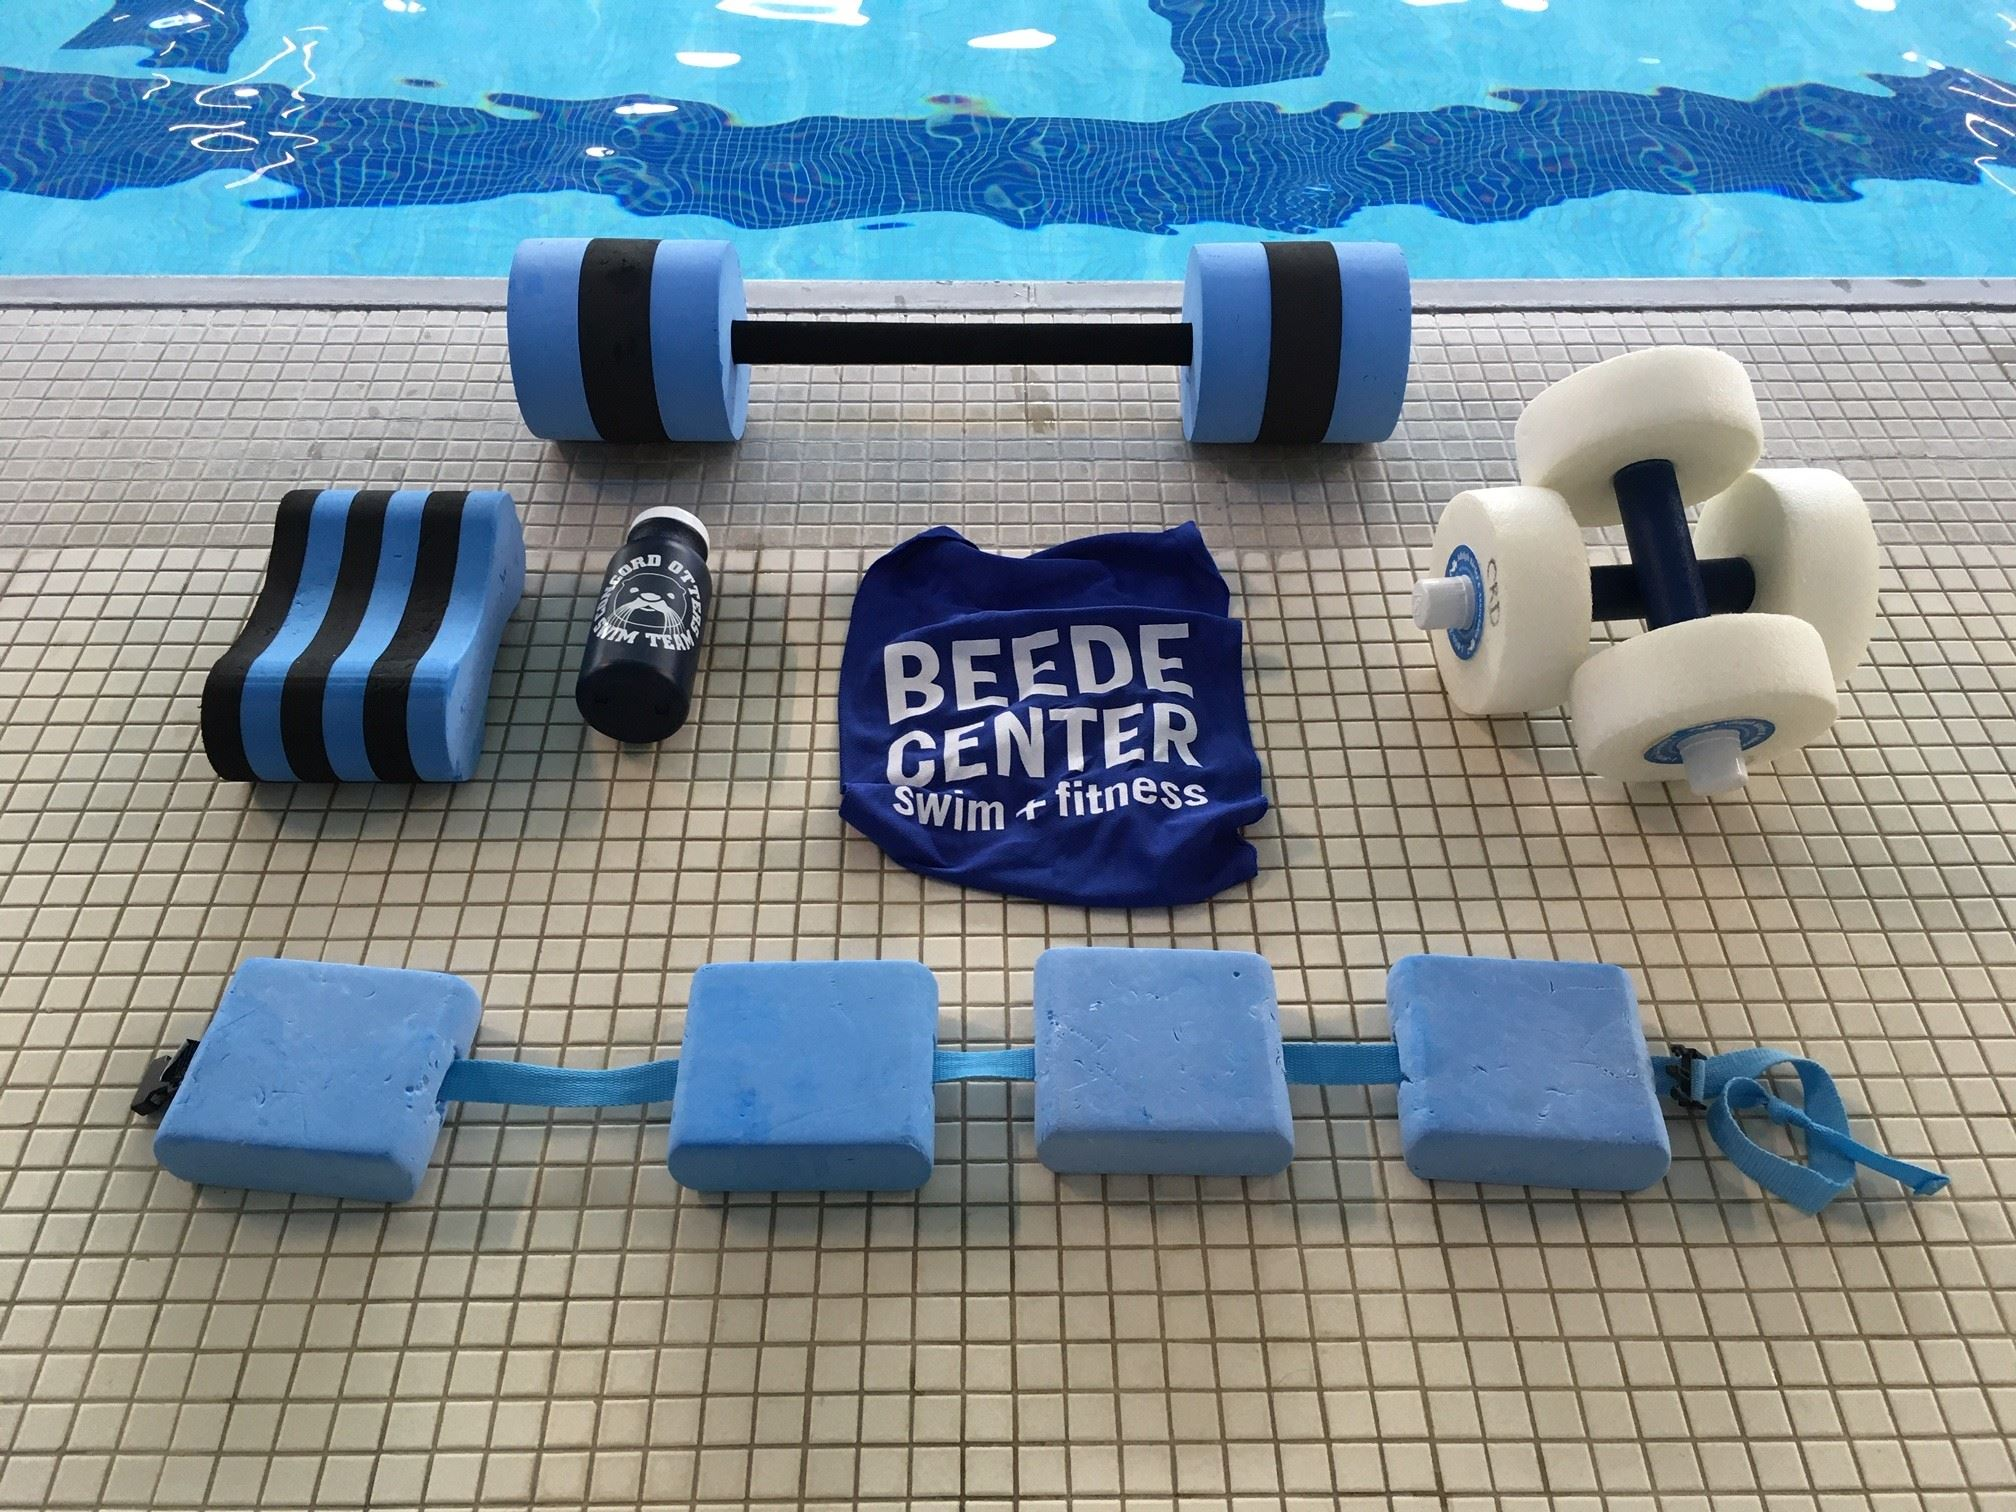 Pool Deck Equipment 2